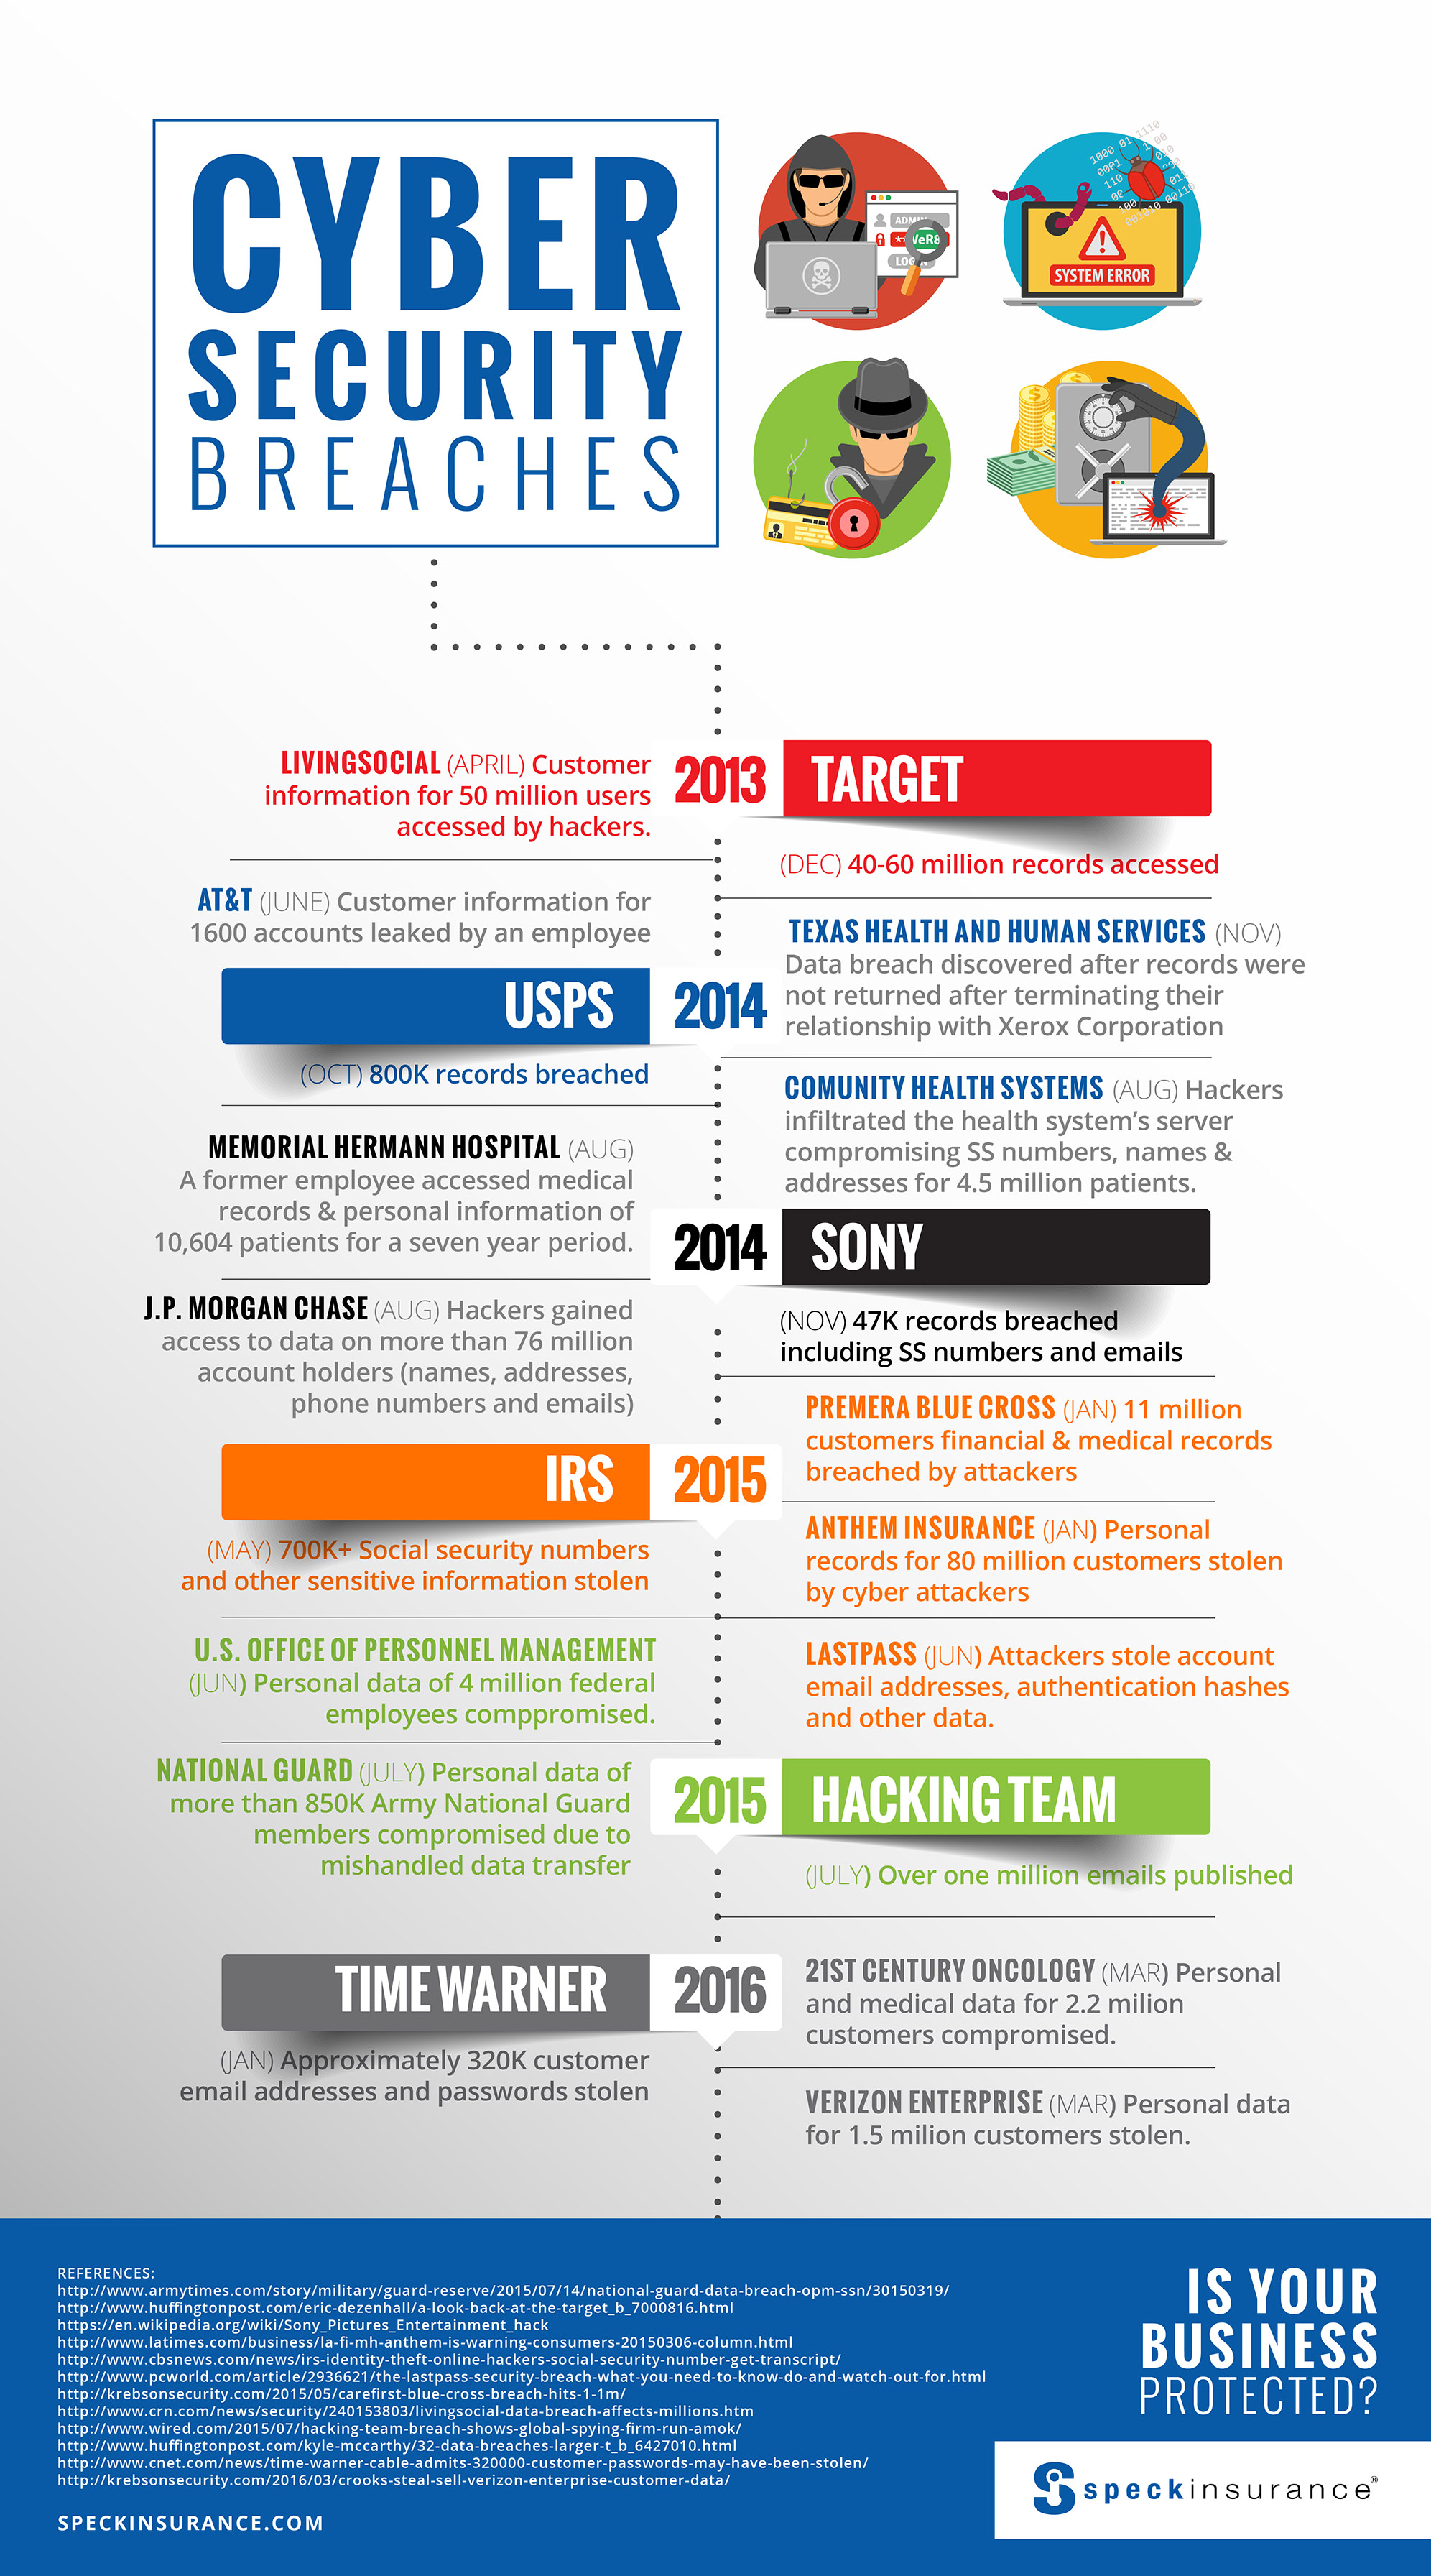 Cyber Security Breaches Infographic